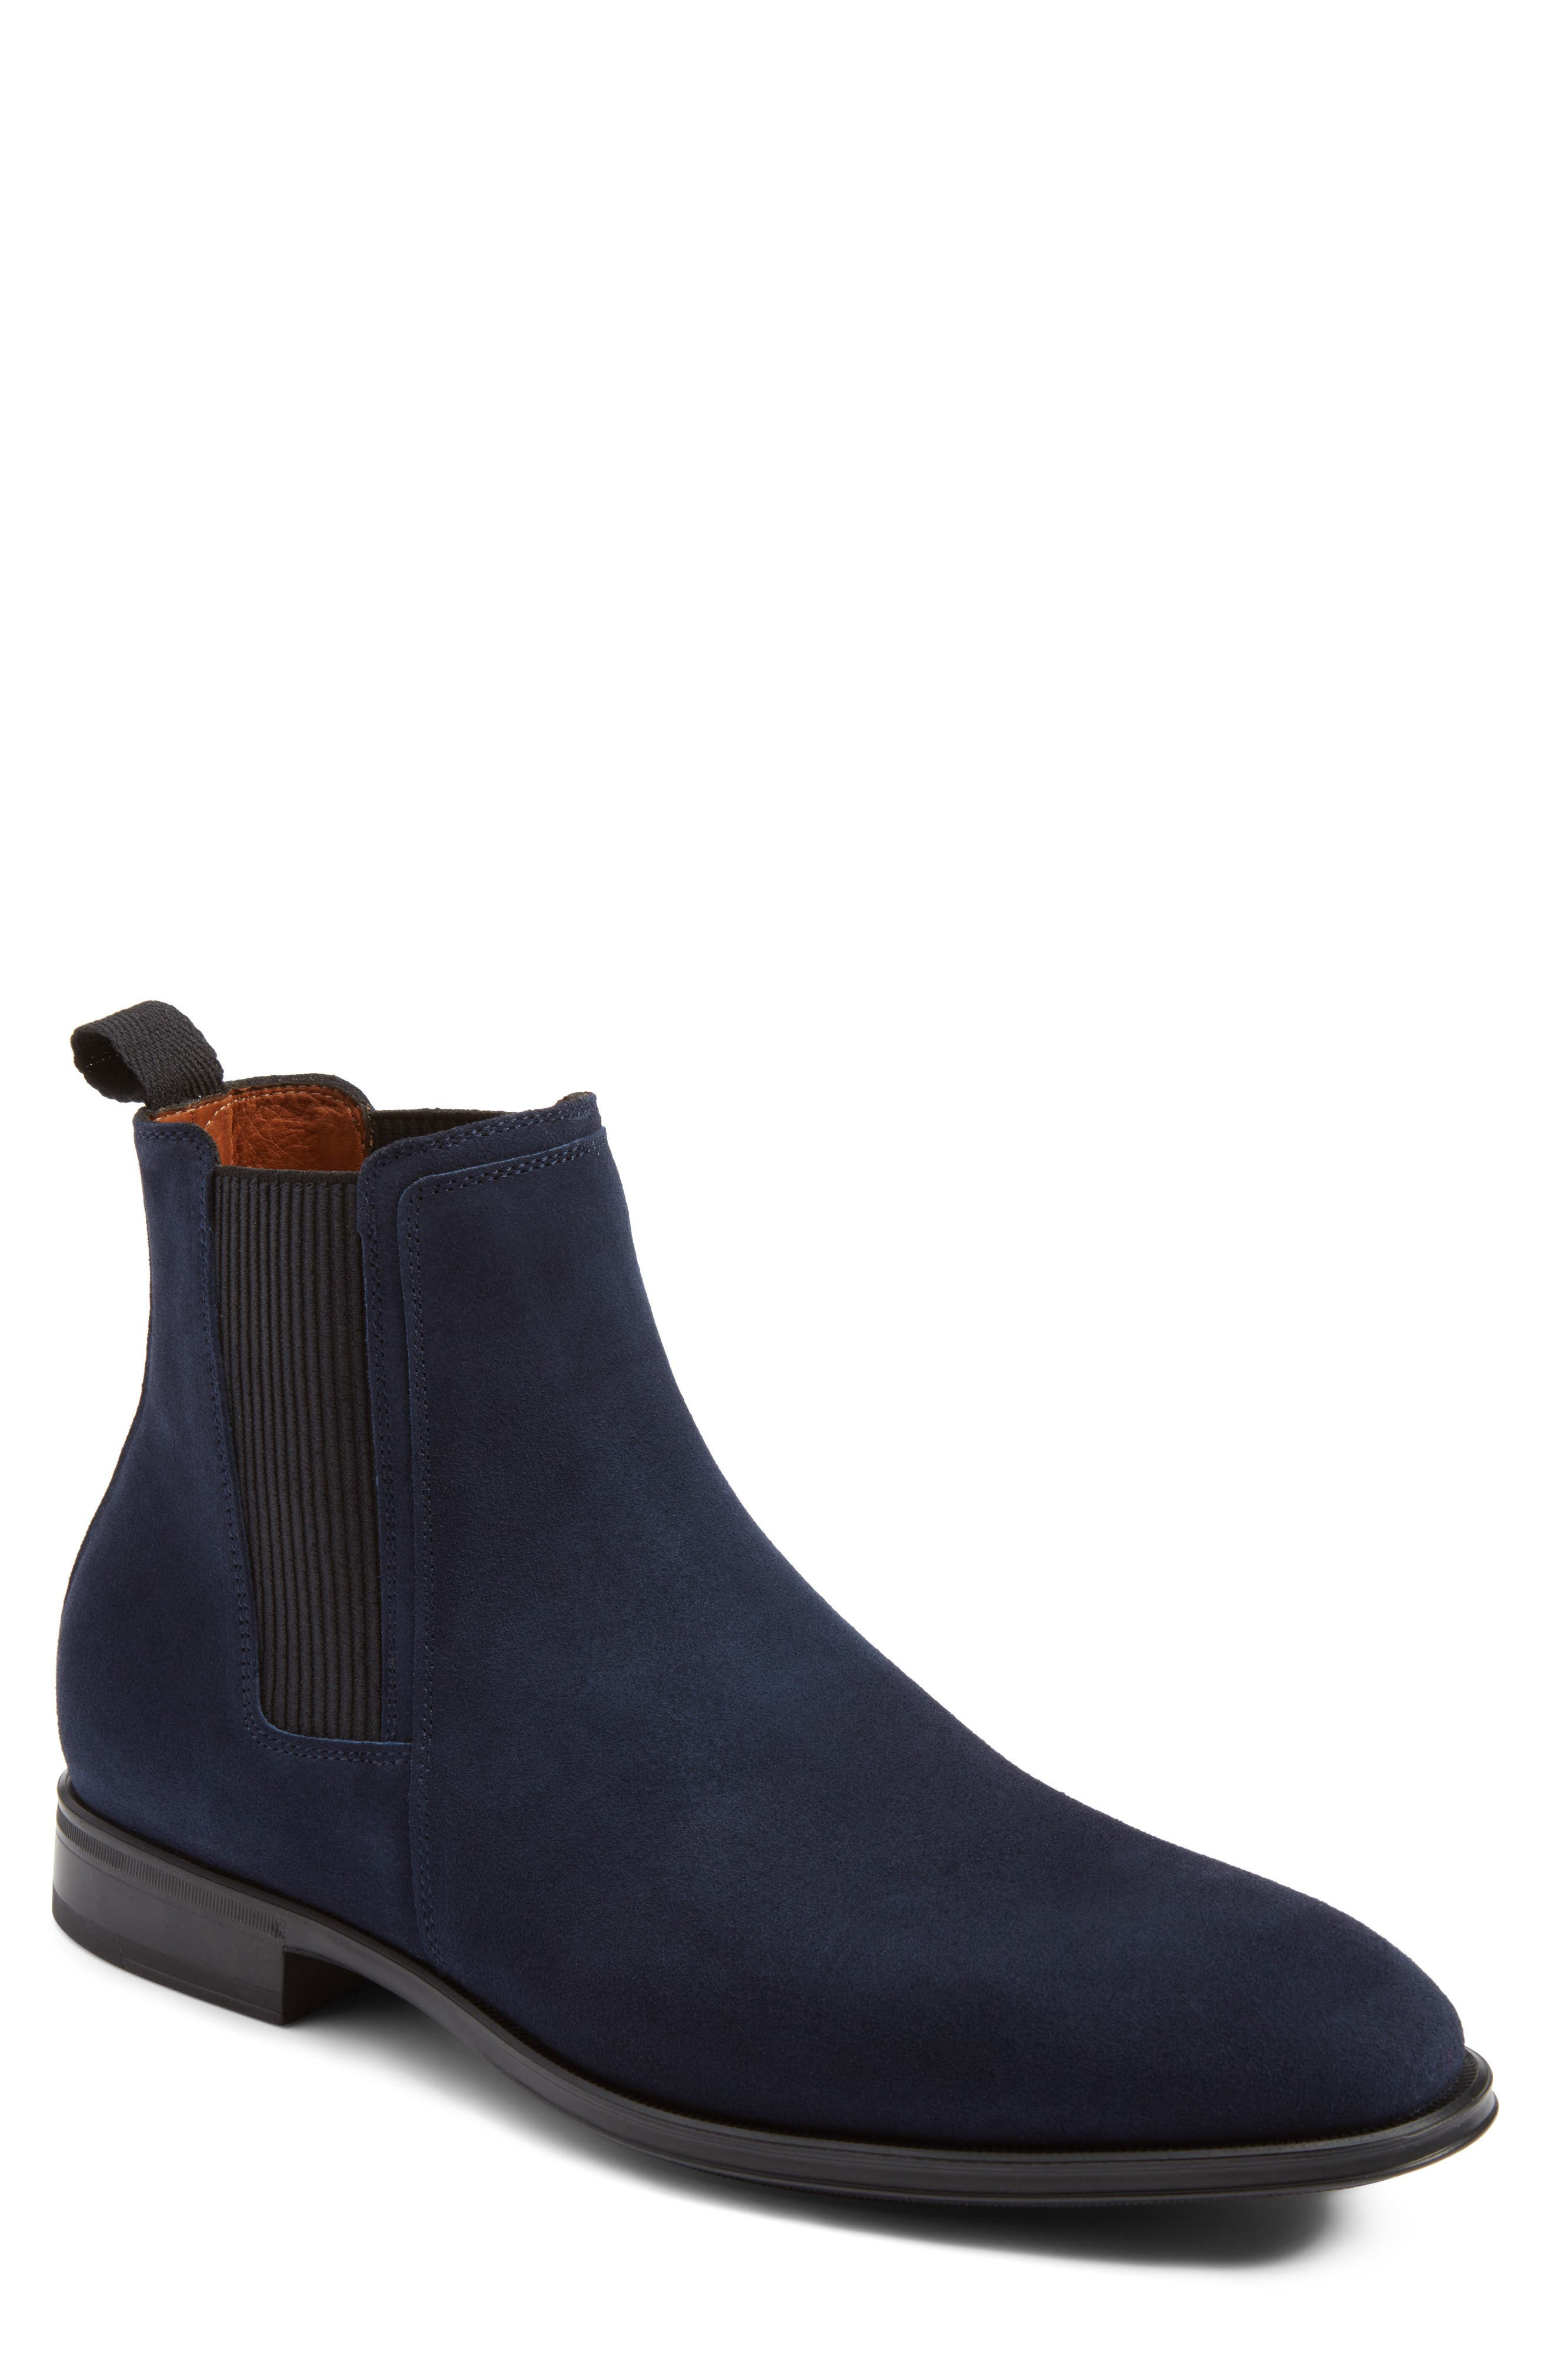 Damon Chelsea Boot,                         Main,                         color, Navy Suede